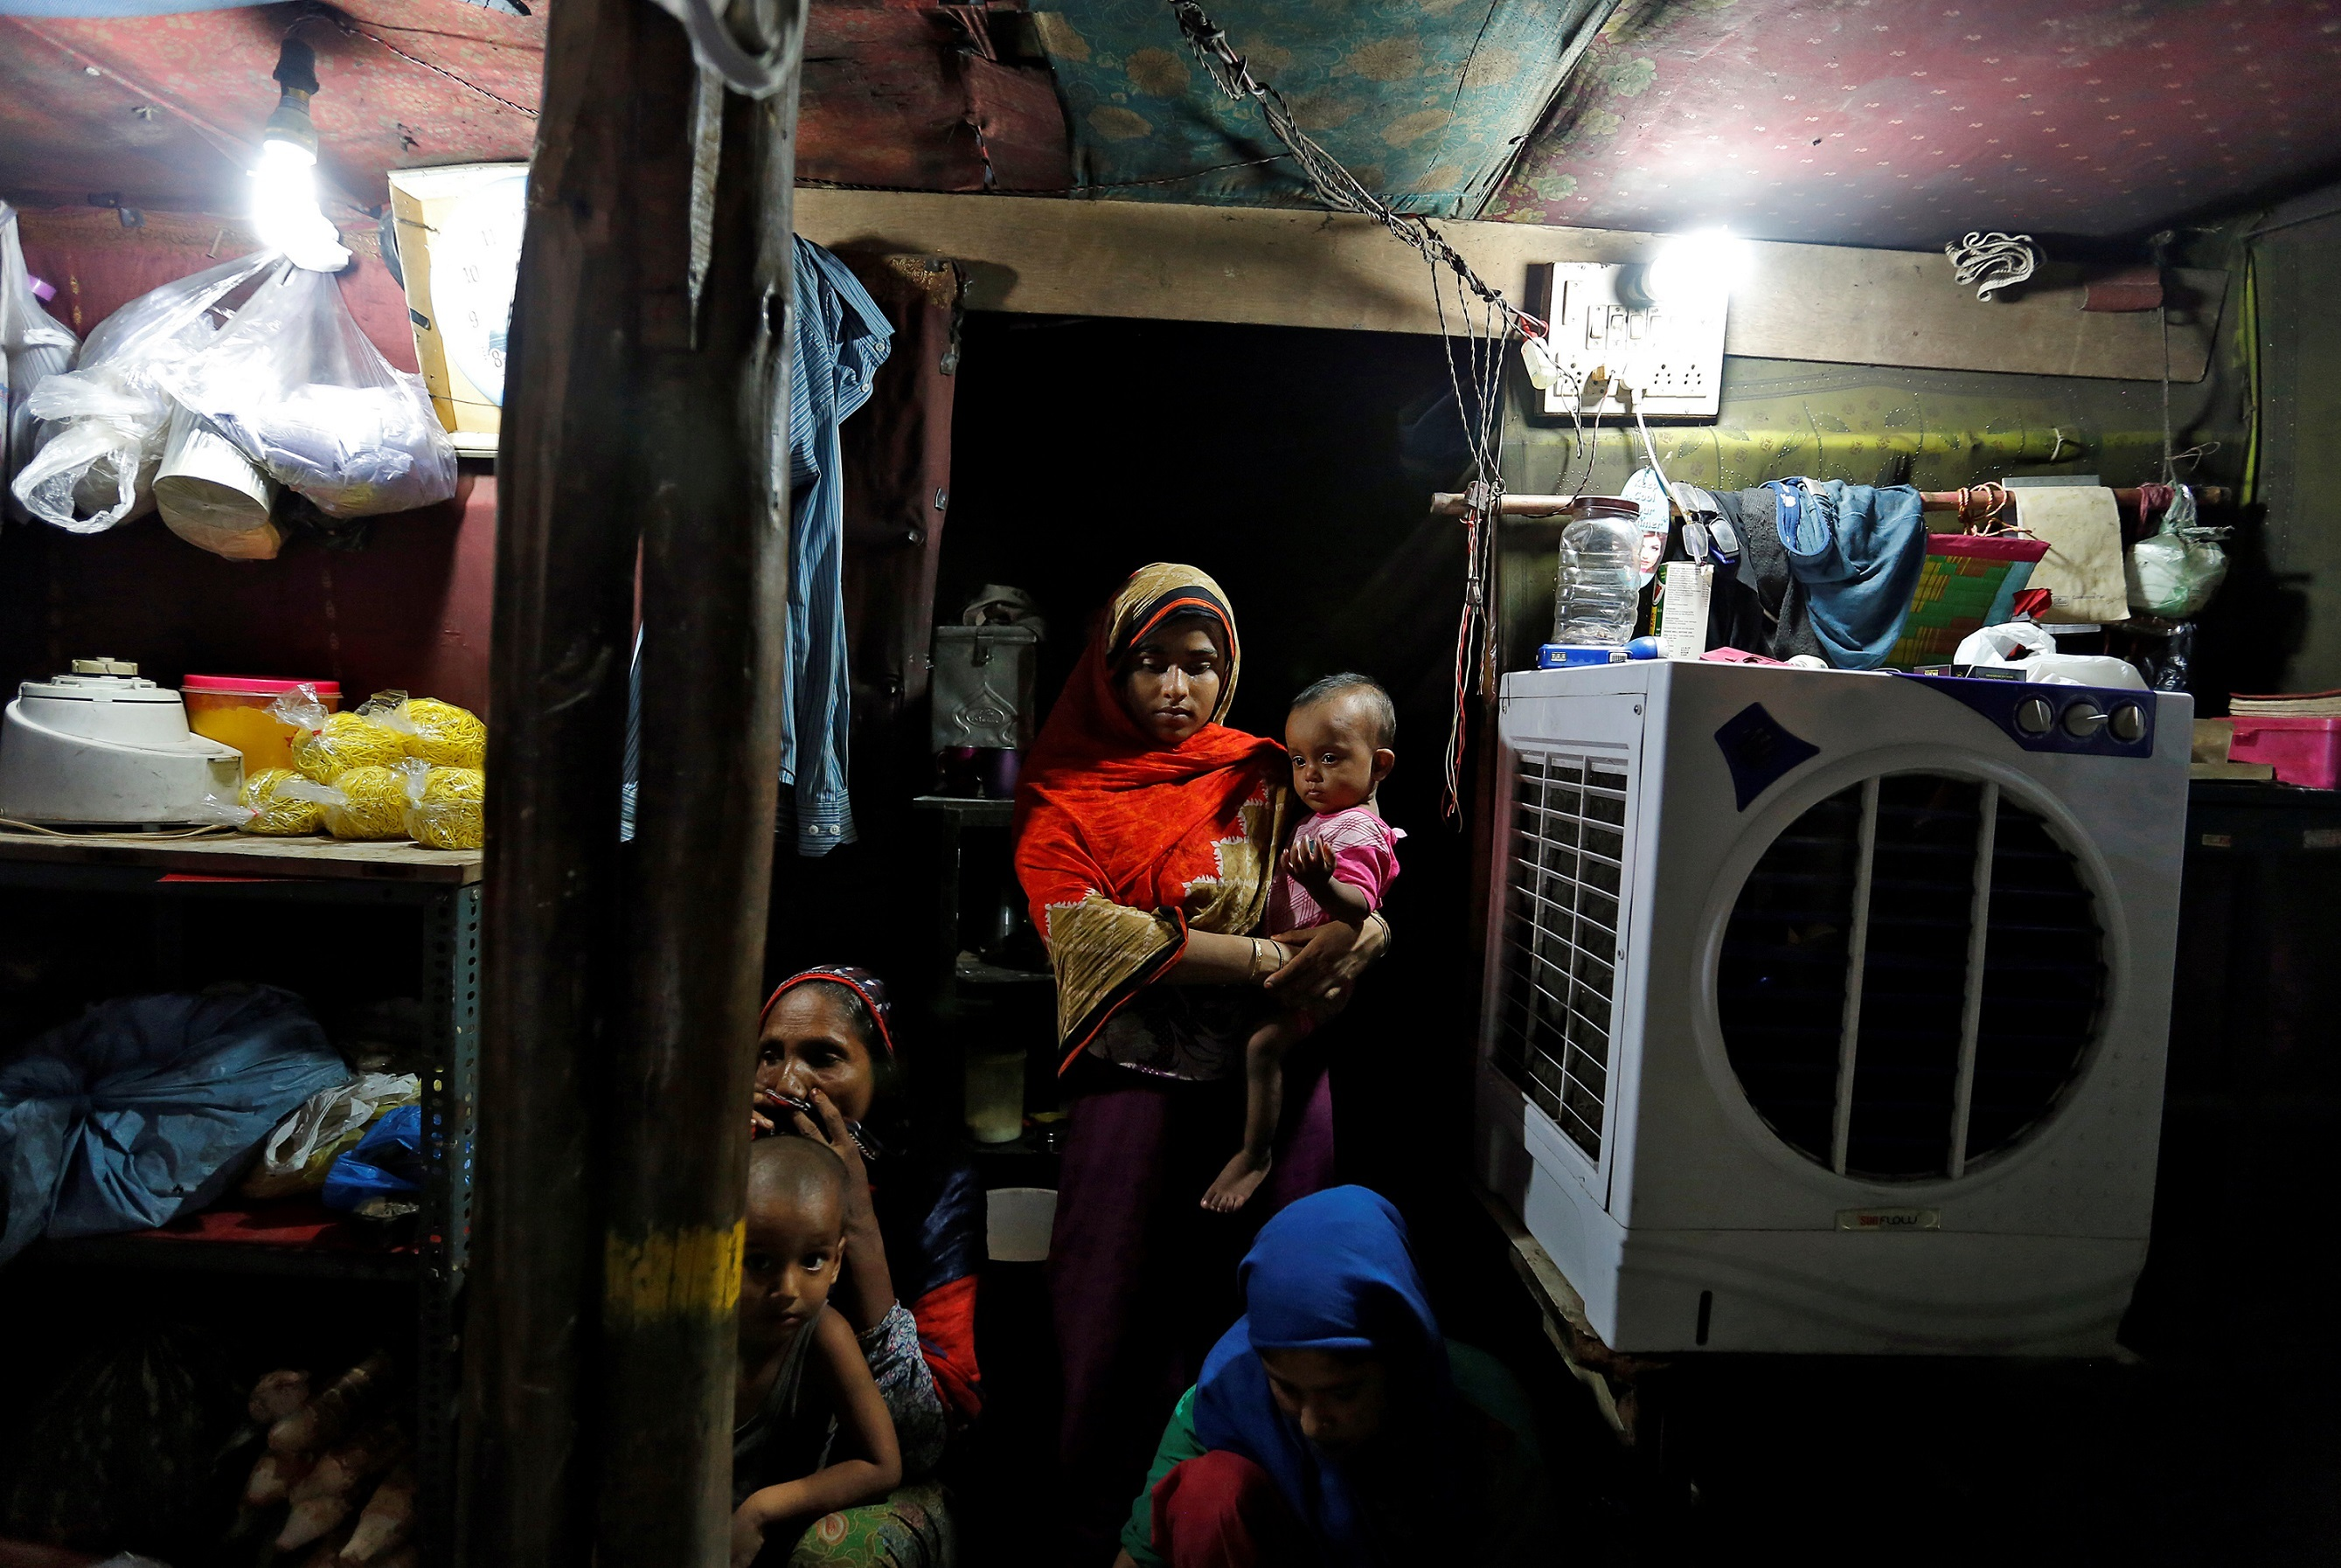 A Rohingya family inside their shack in a camp in Delhi. (Credit: Cathal McNaughton / Reuters)